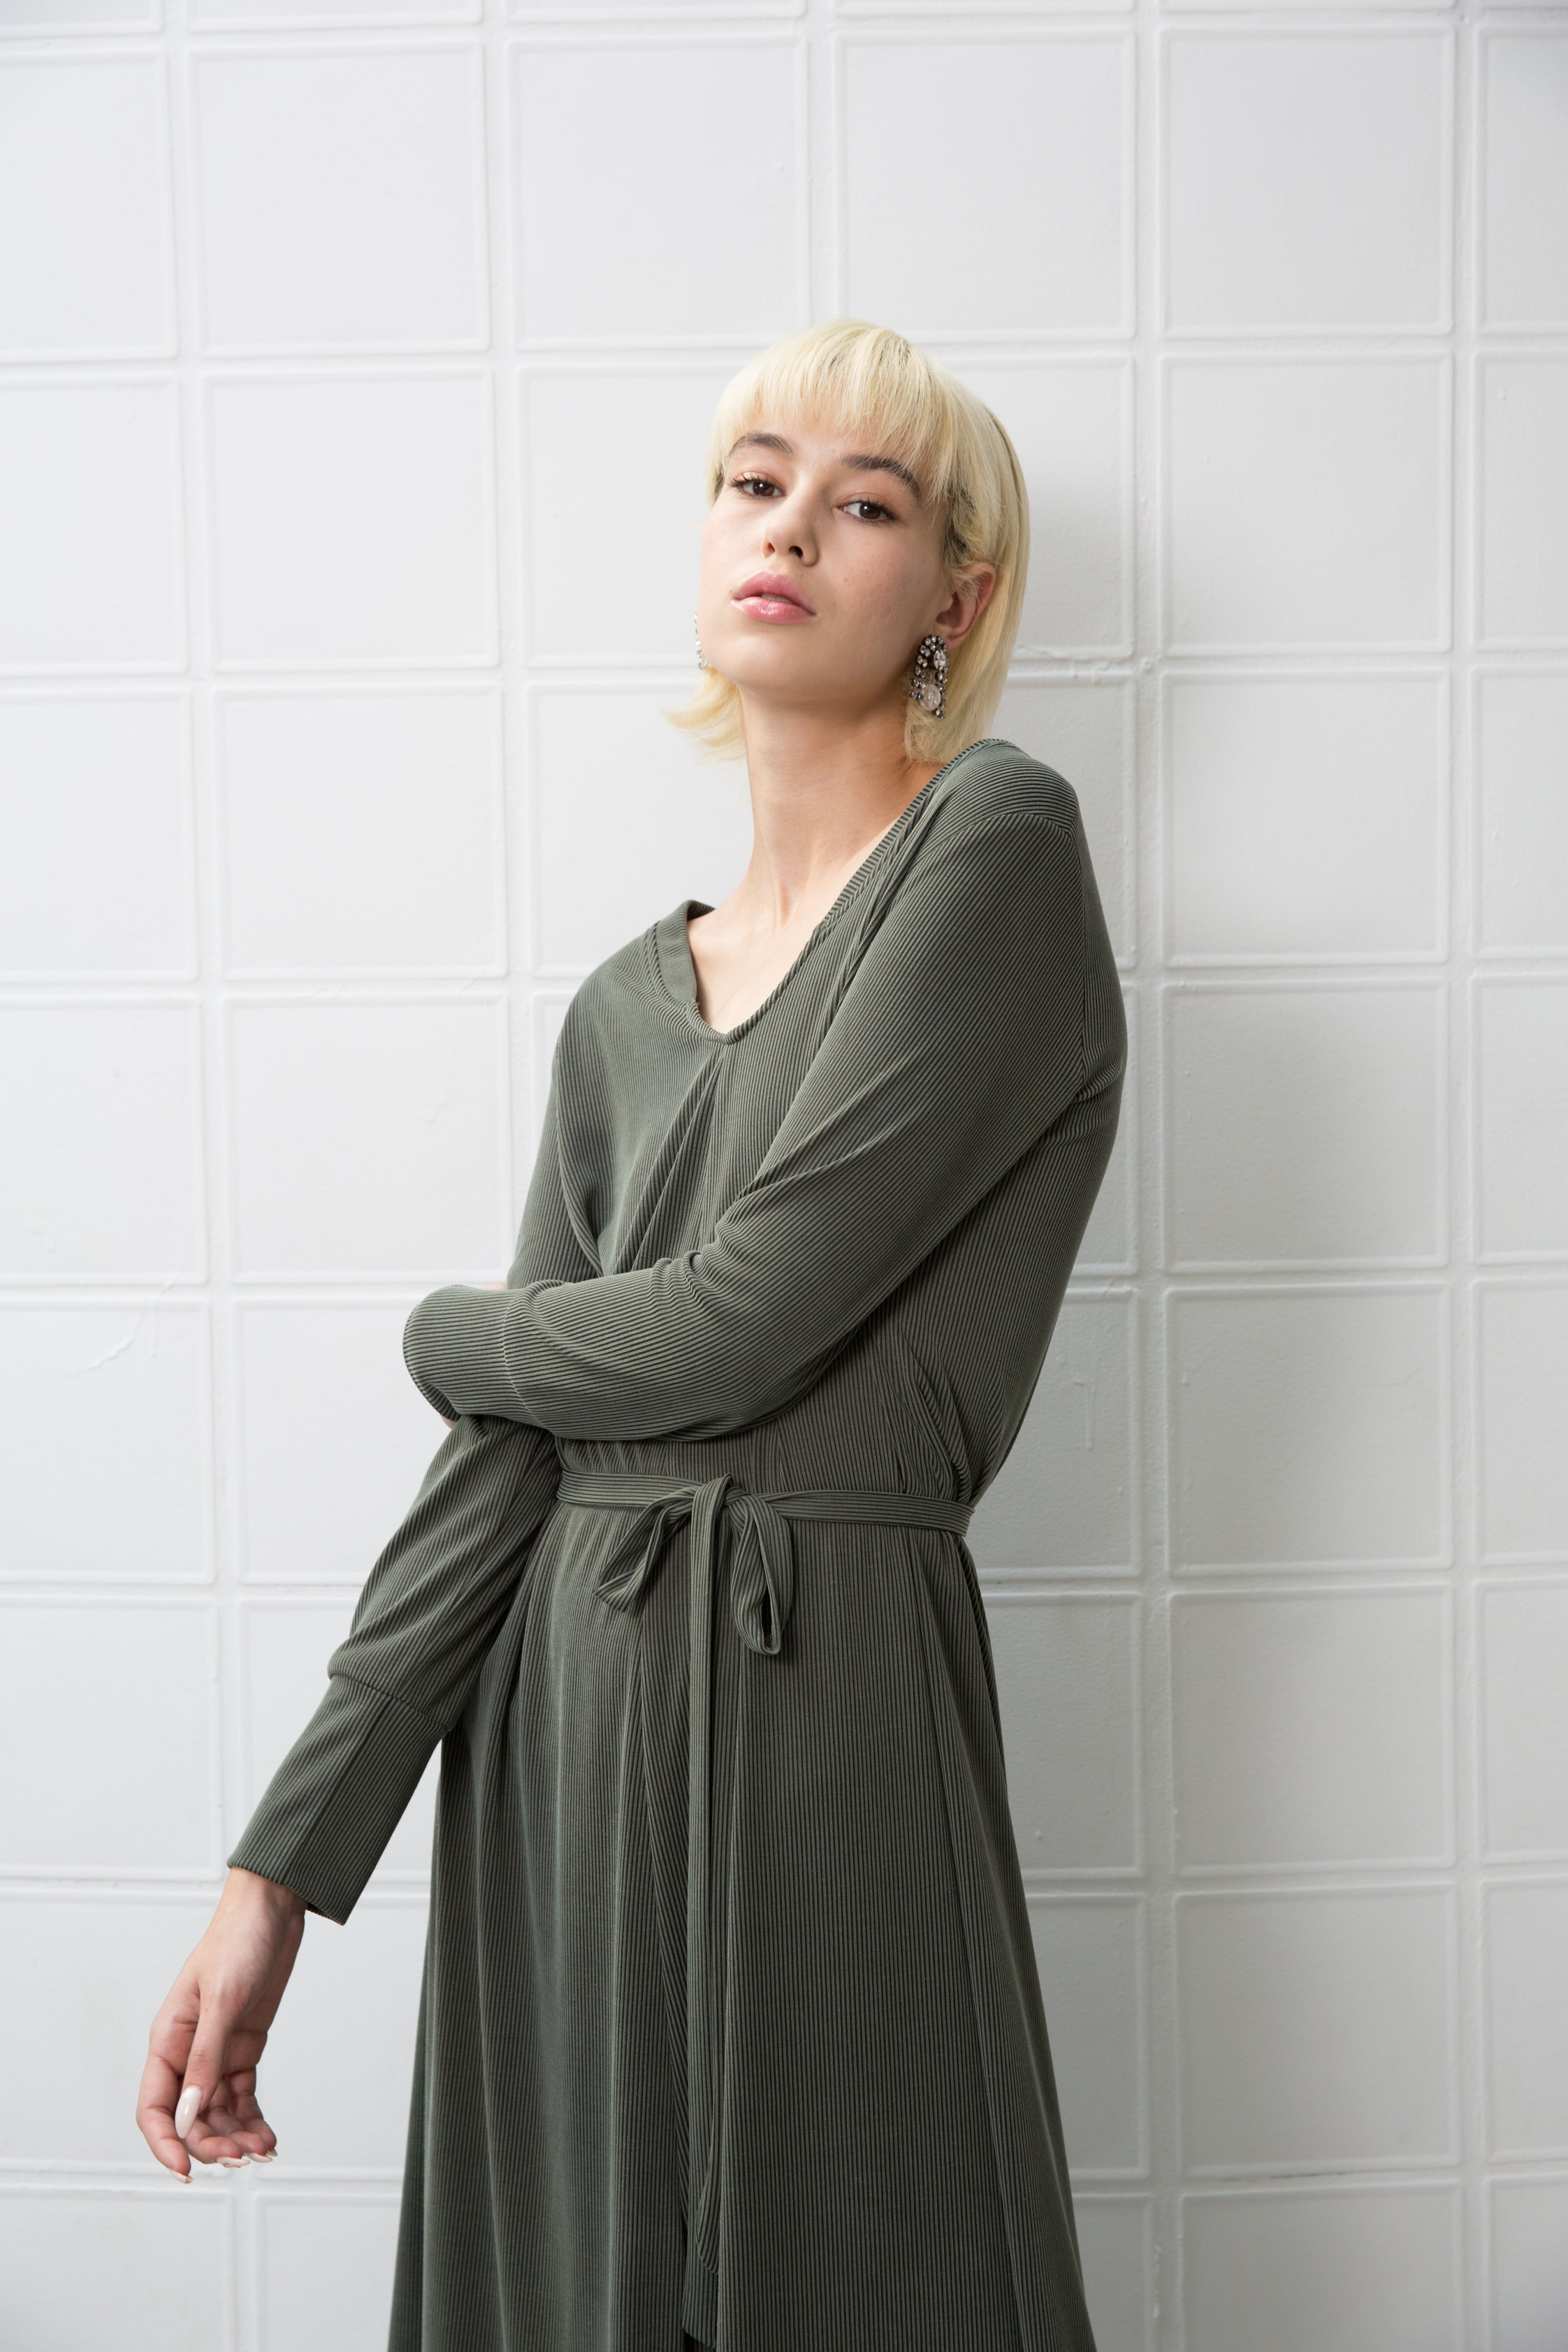 GOODIES Dress - dark green